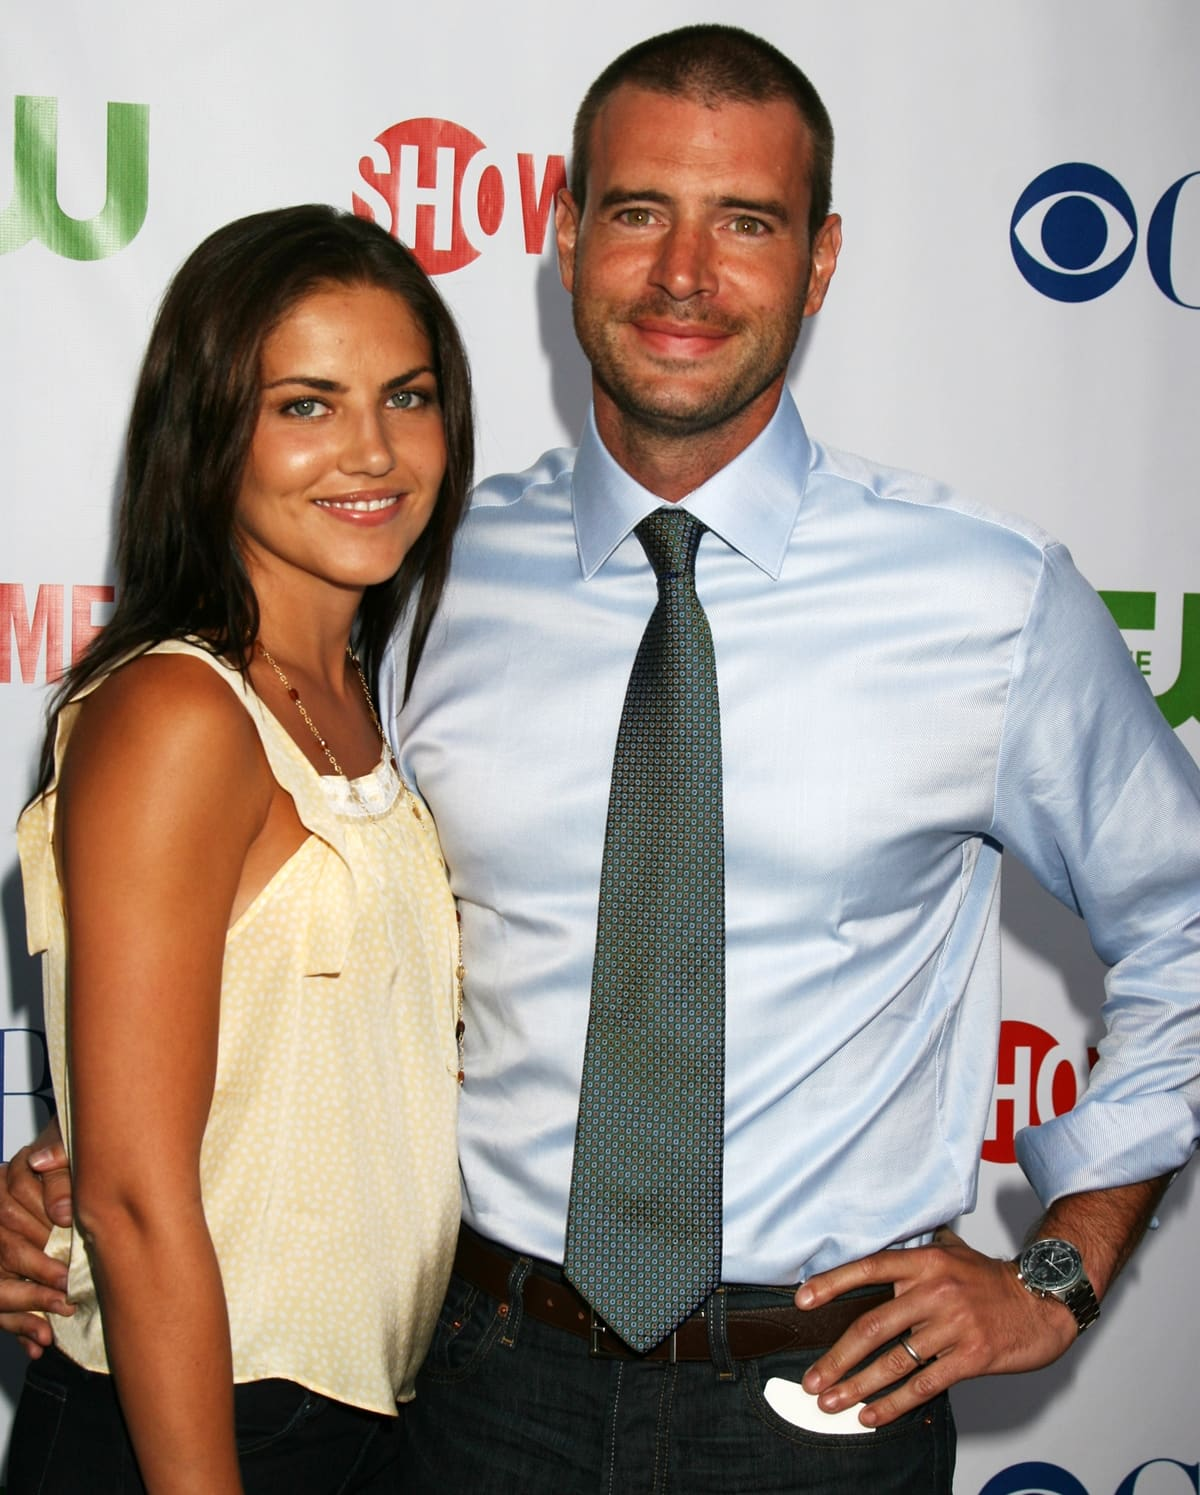 Scott Foley and wife Marika Dominczyk met on the set of the sitcom The Help